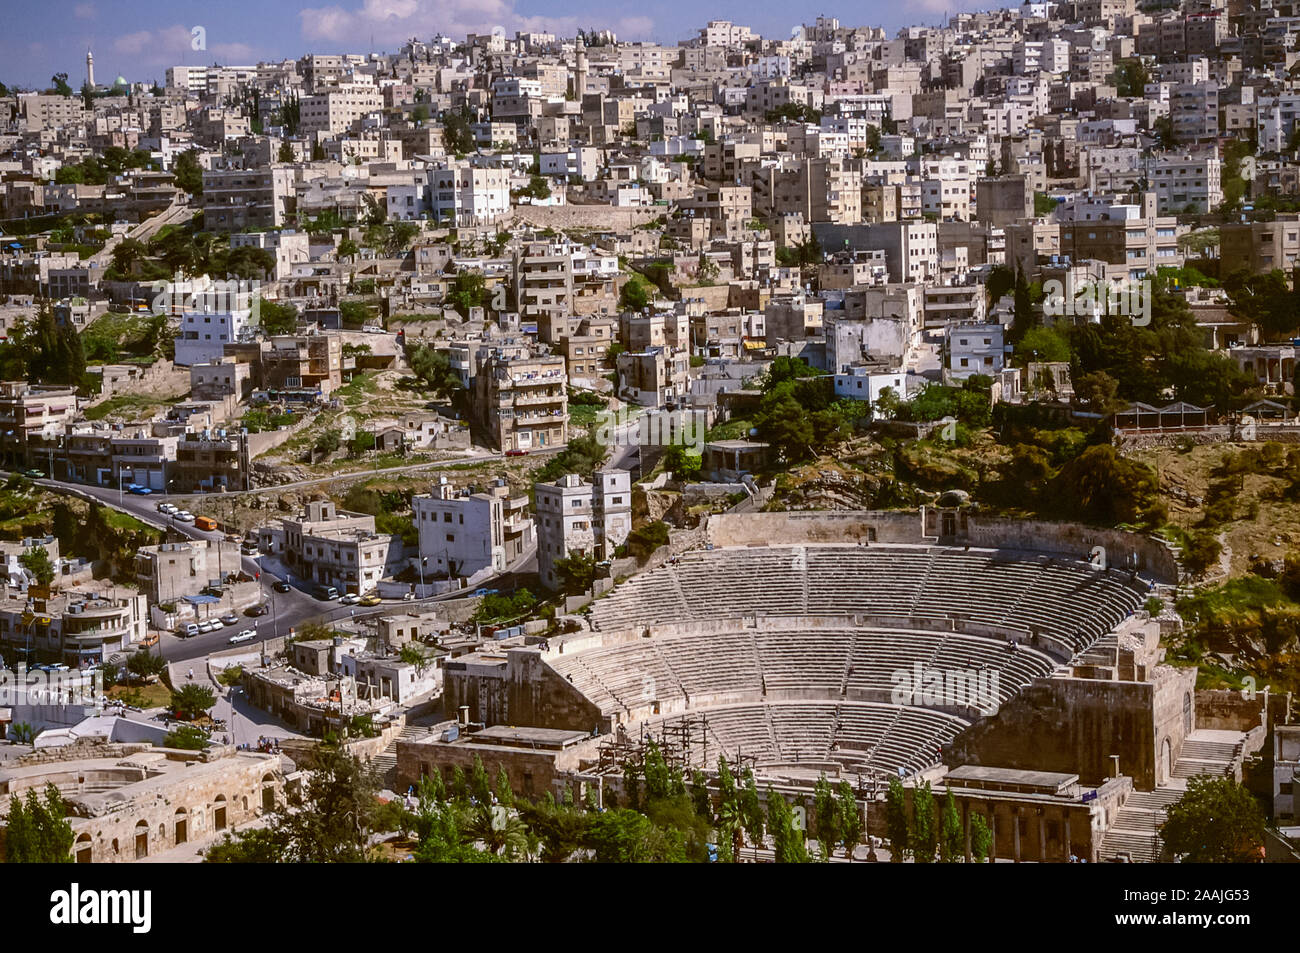 Jordan. Aerial view of the Jordan capital city of Amman from the Citadel overlook viewpoint on the ancient Roman site of Jabal al Qula'a Hill looking towards the ruins and remains of the Roman Amphitheatre in 1998 Stock Photo